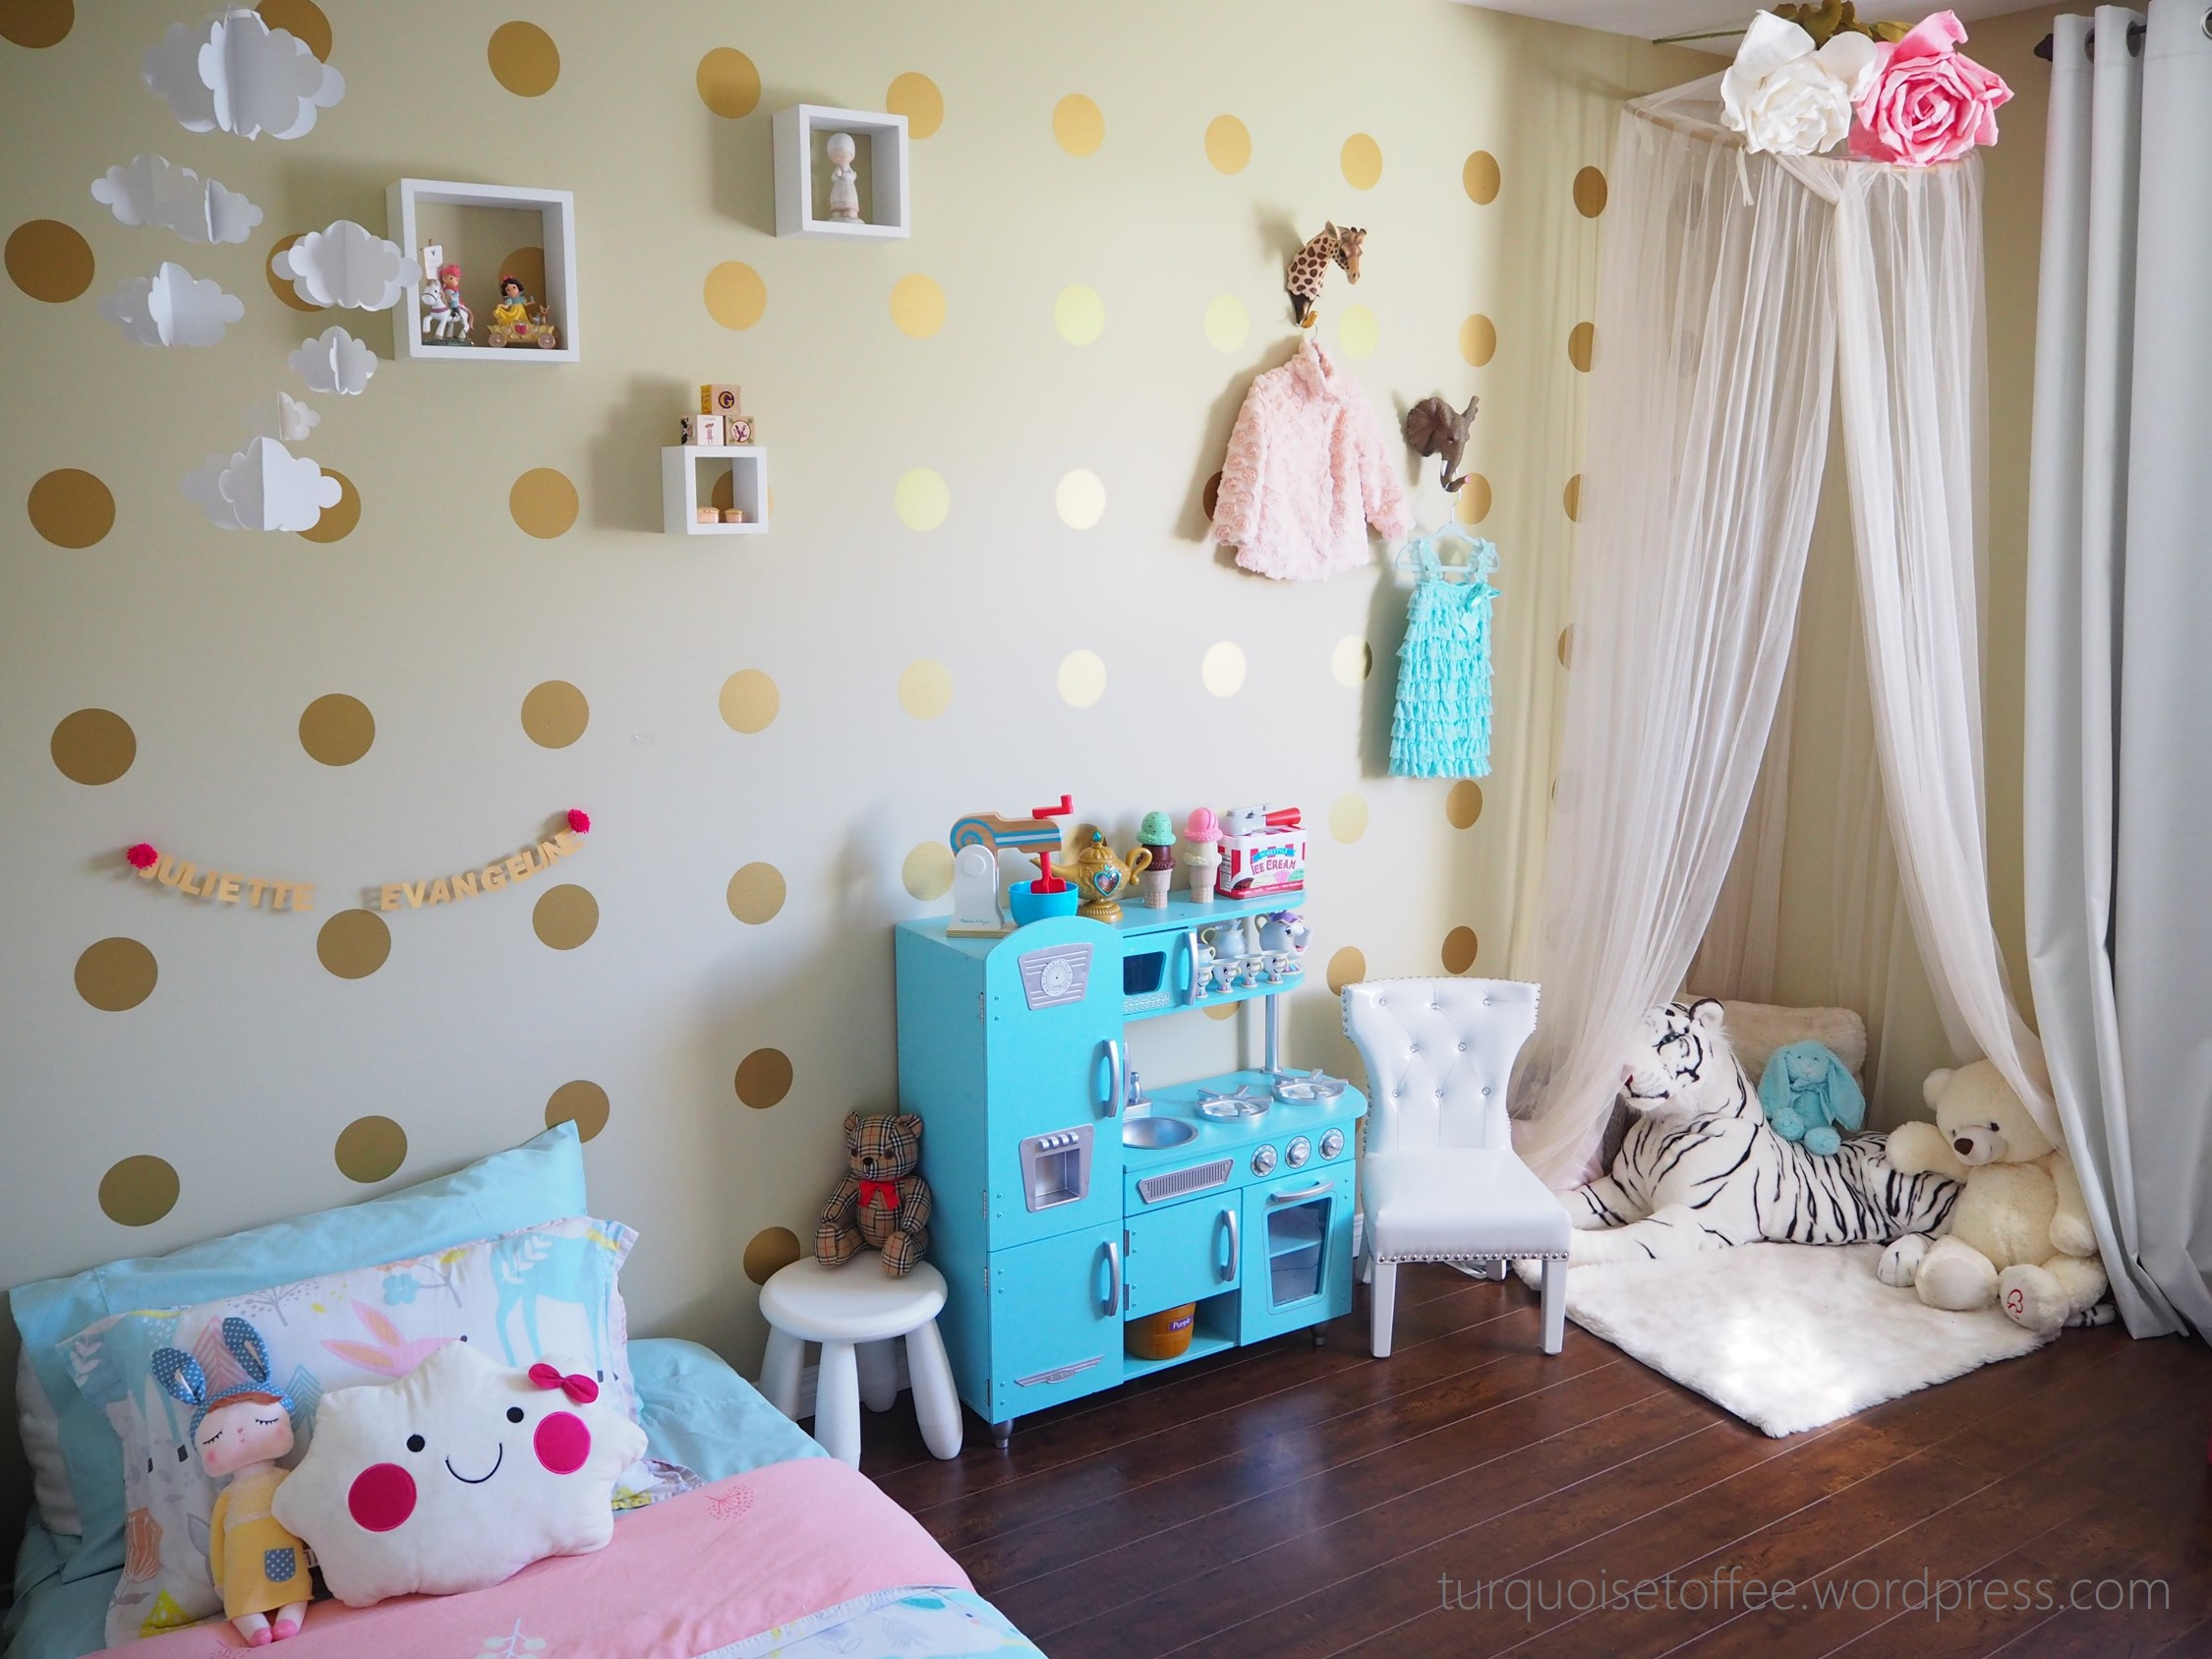 ikea toddler chair pedicure parts gold, turquoise and pink little girl room - project nursery